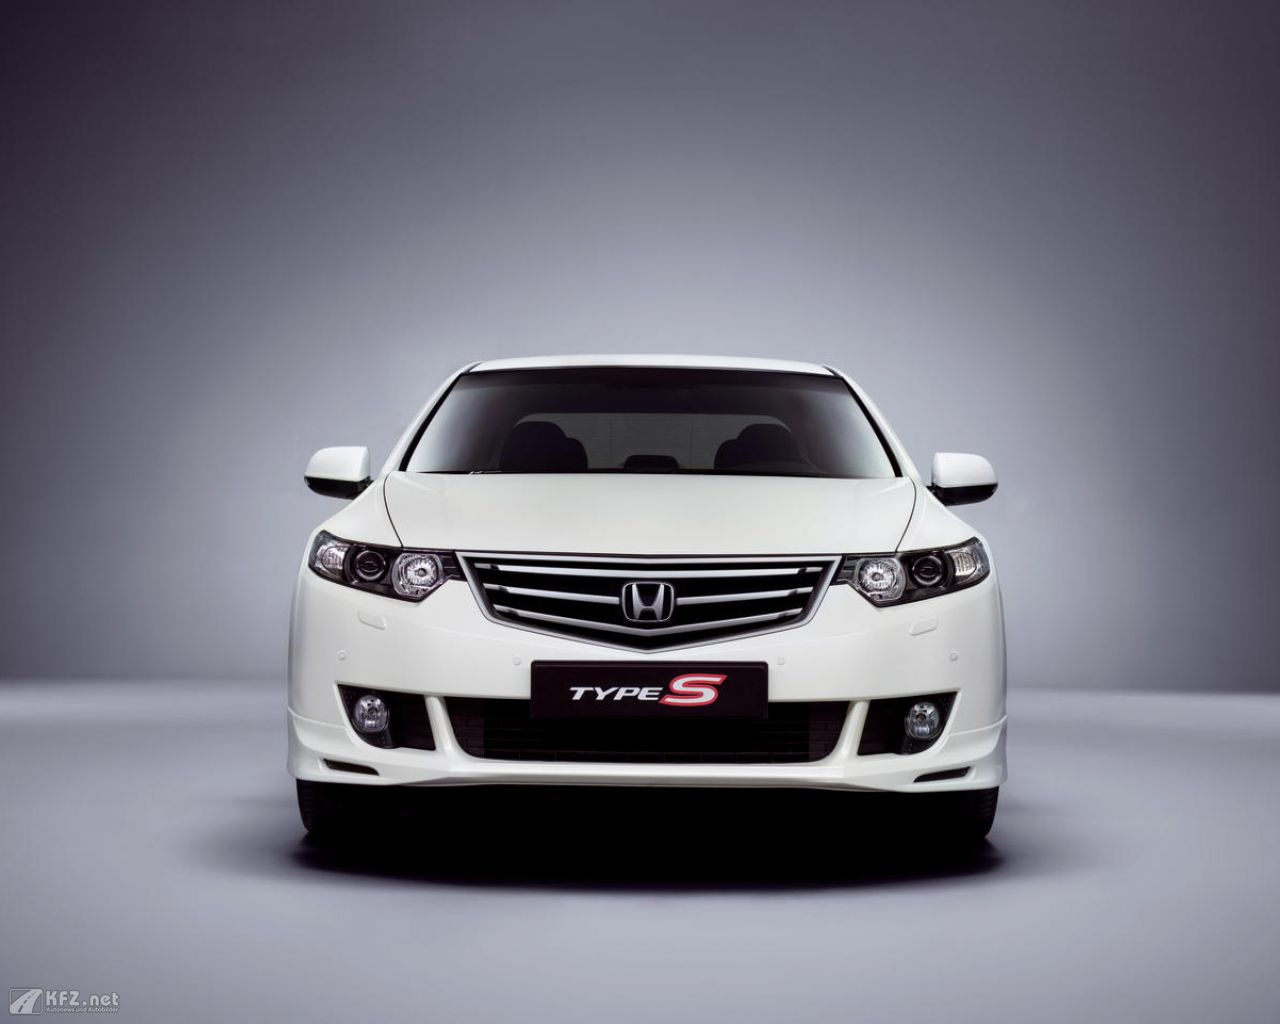 honda-accord-1280x1024-110